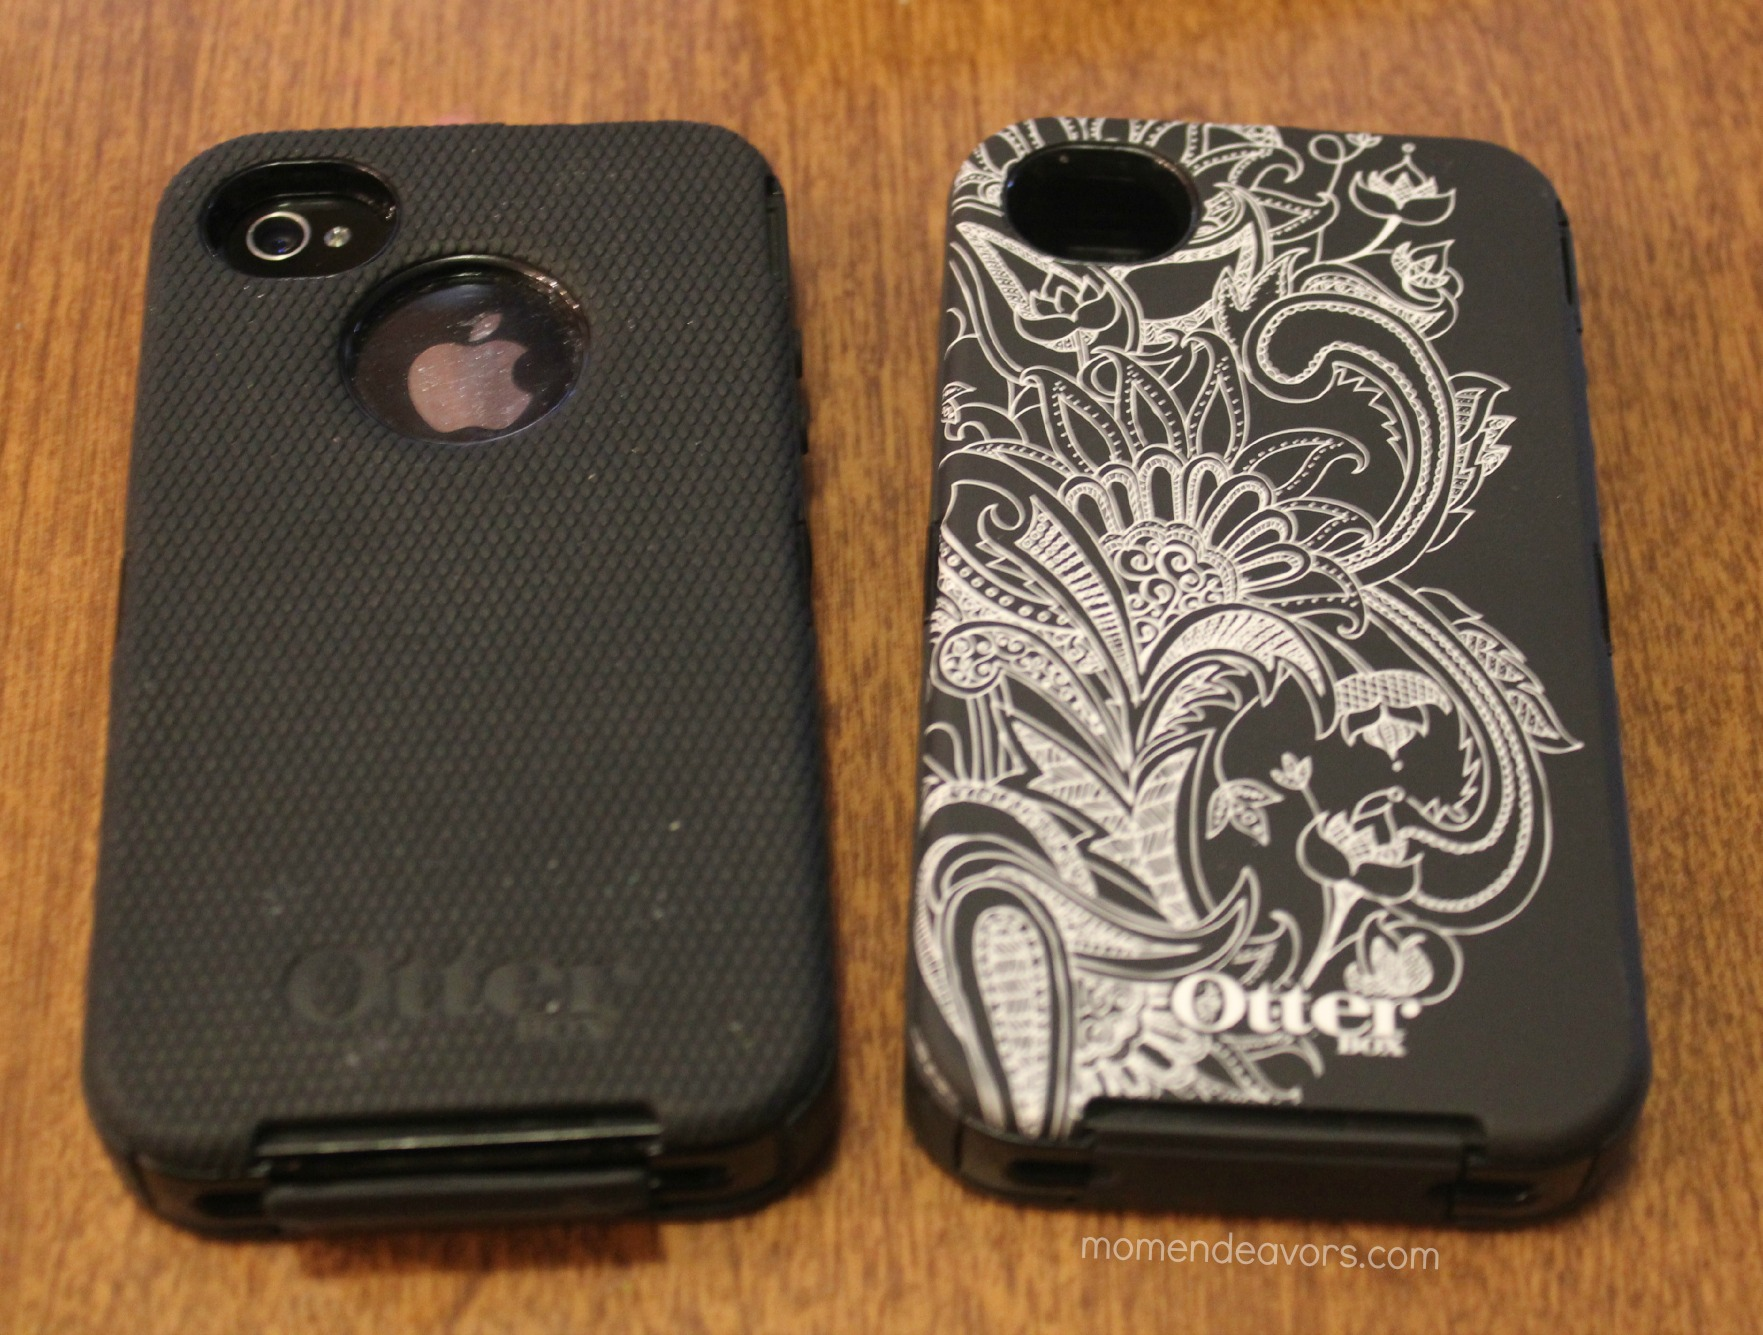 Keep Your Phone Kid-Safe with OtterBox! #otterkids